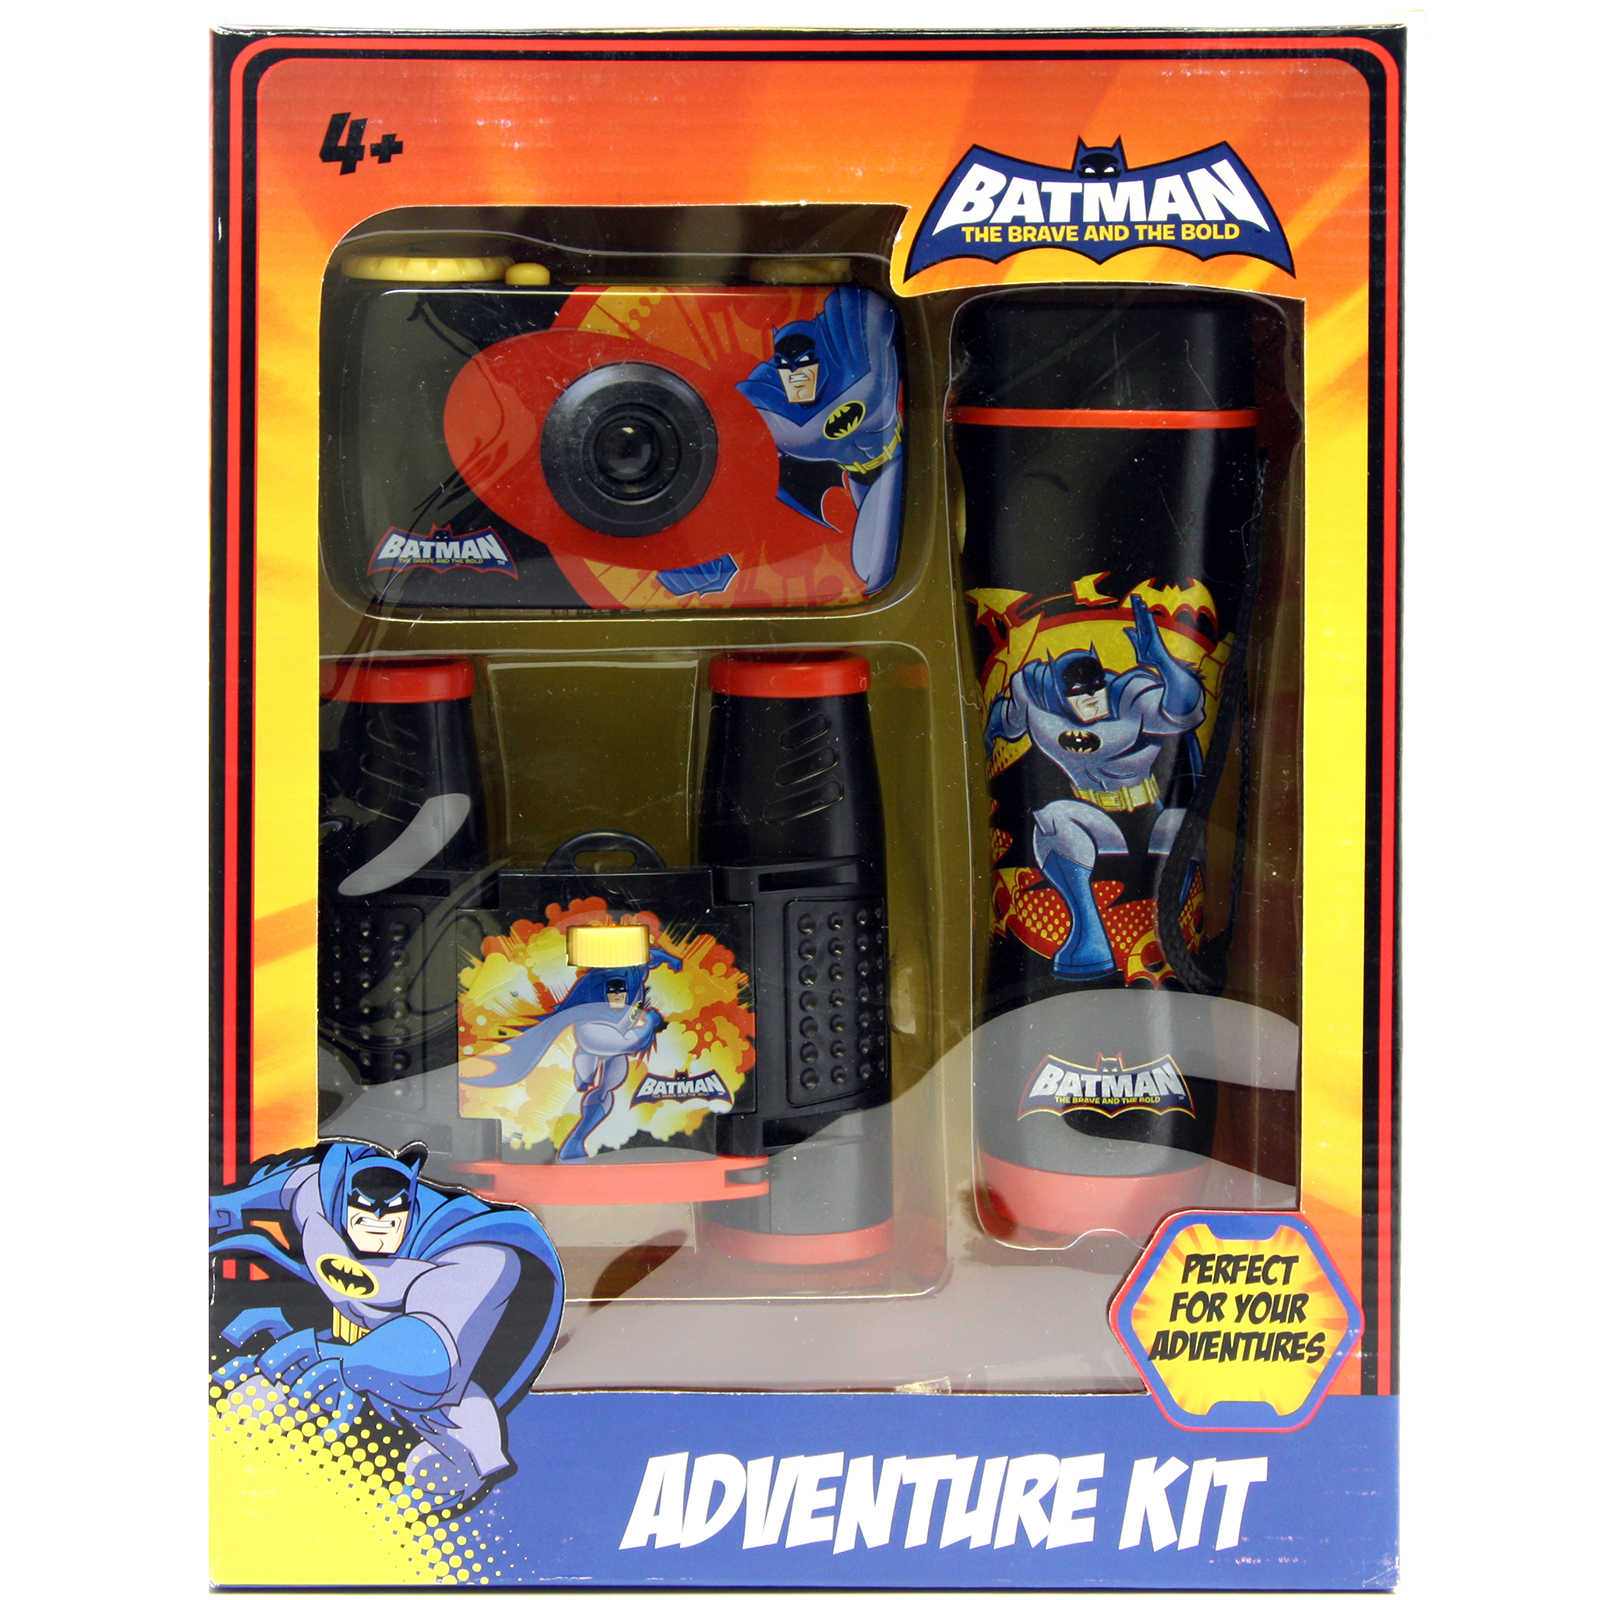 Batman The Brave and the Bold Adventure Kit